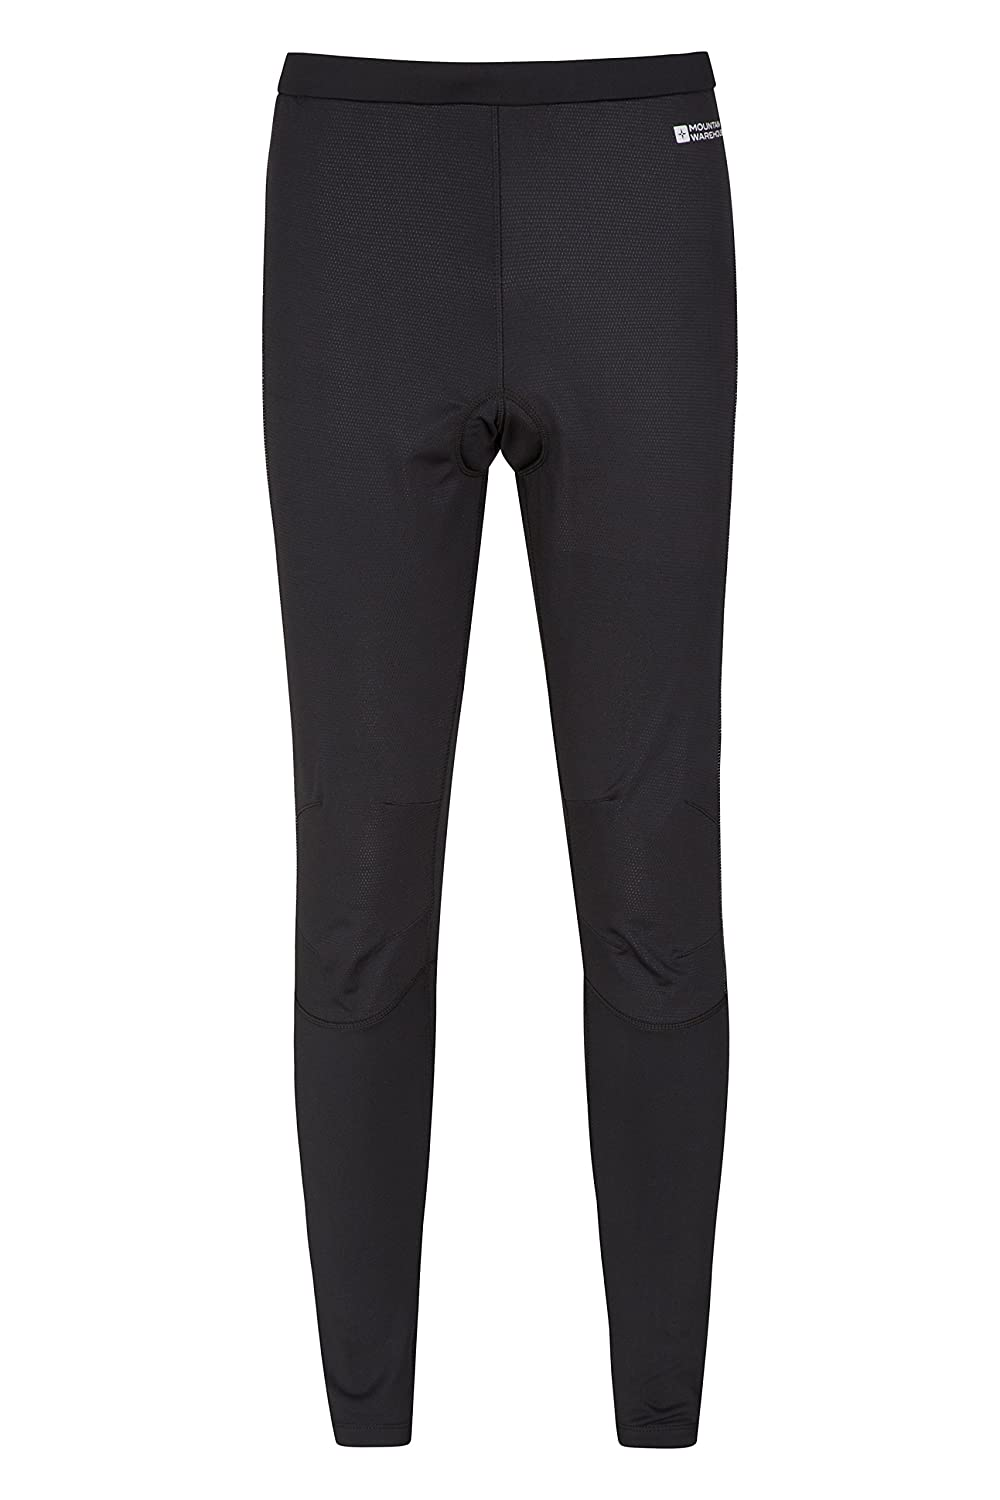 Mountain Warehouse Winter Ride Mens Tights -Breathable Running Tights